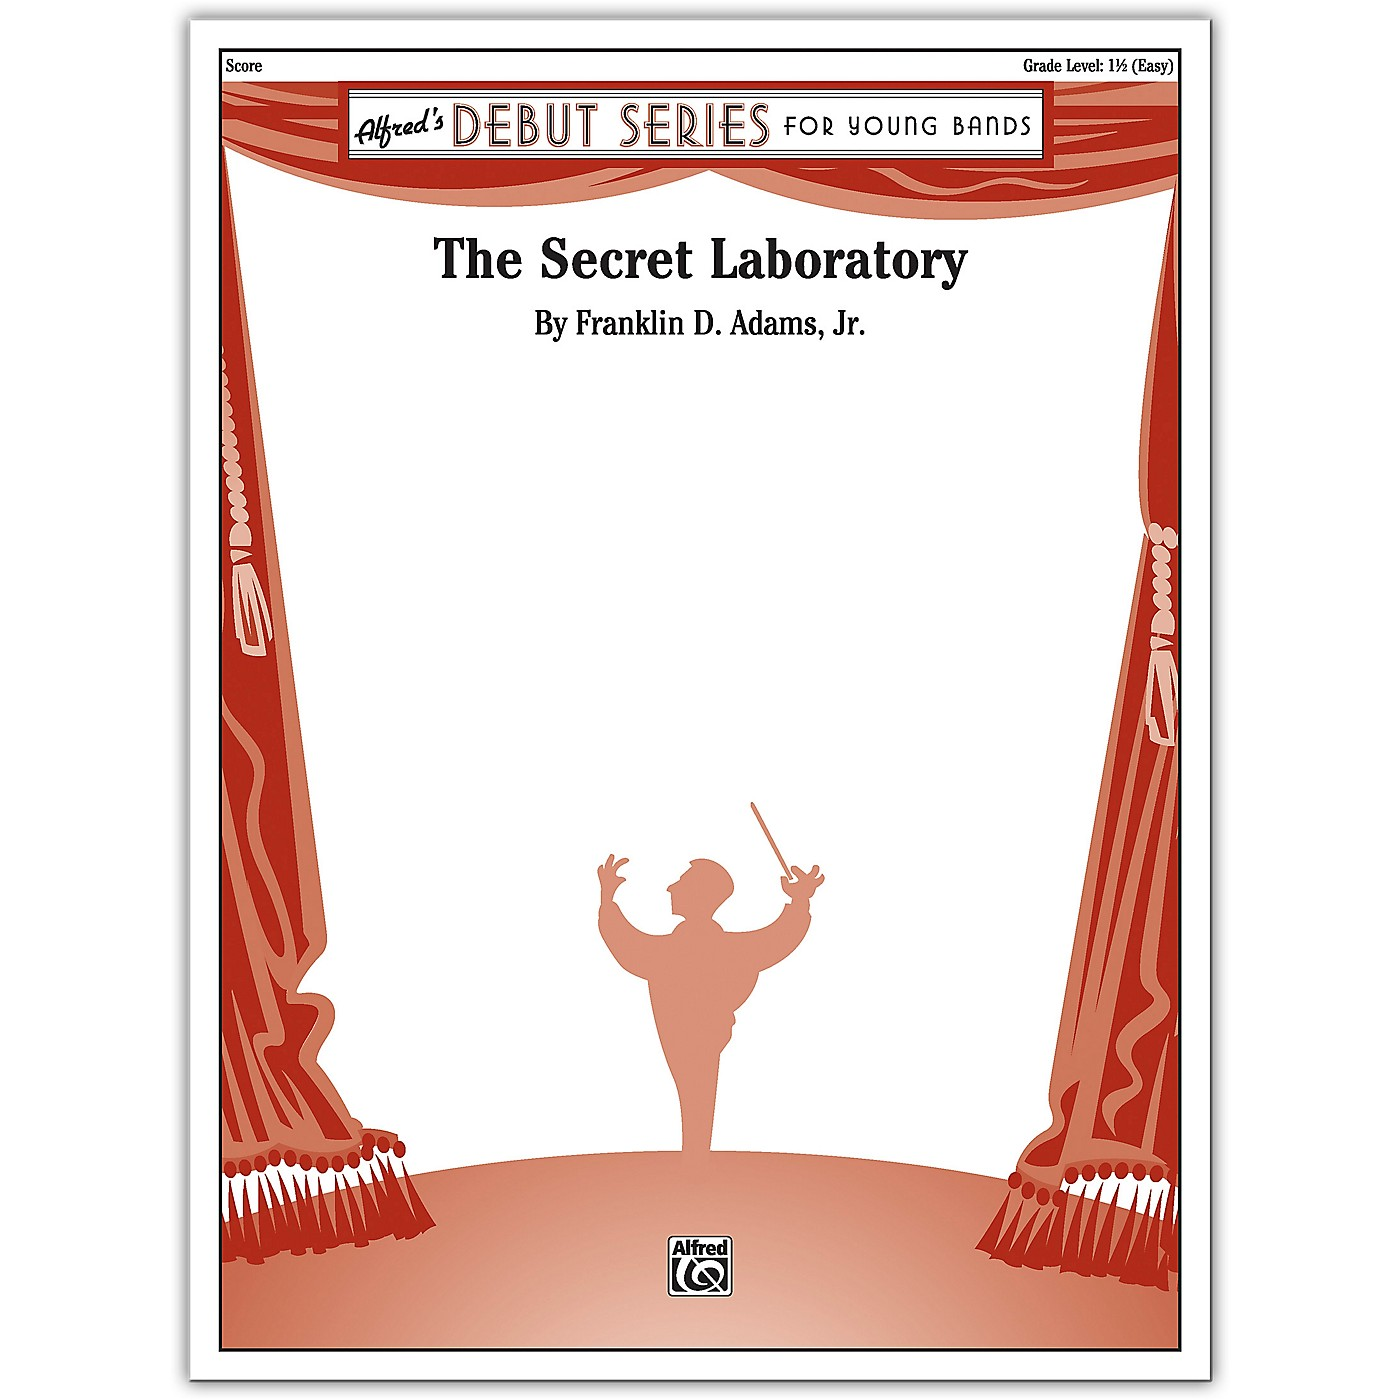 Alfred The Secret Laboratory Conductor Score 1.5 (Easy) thumbnail